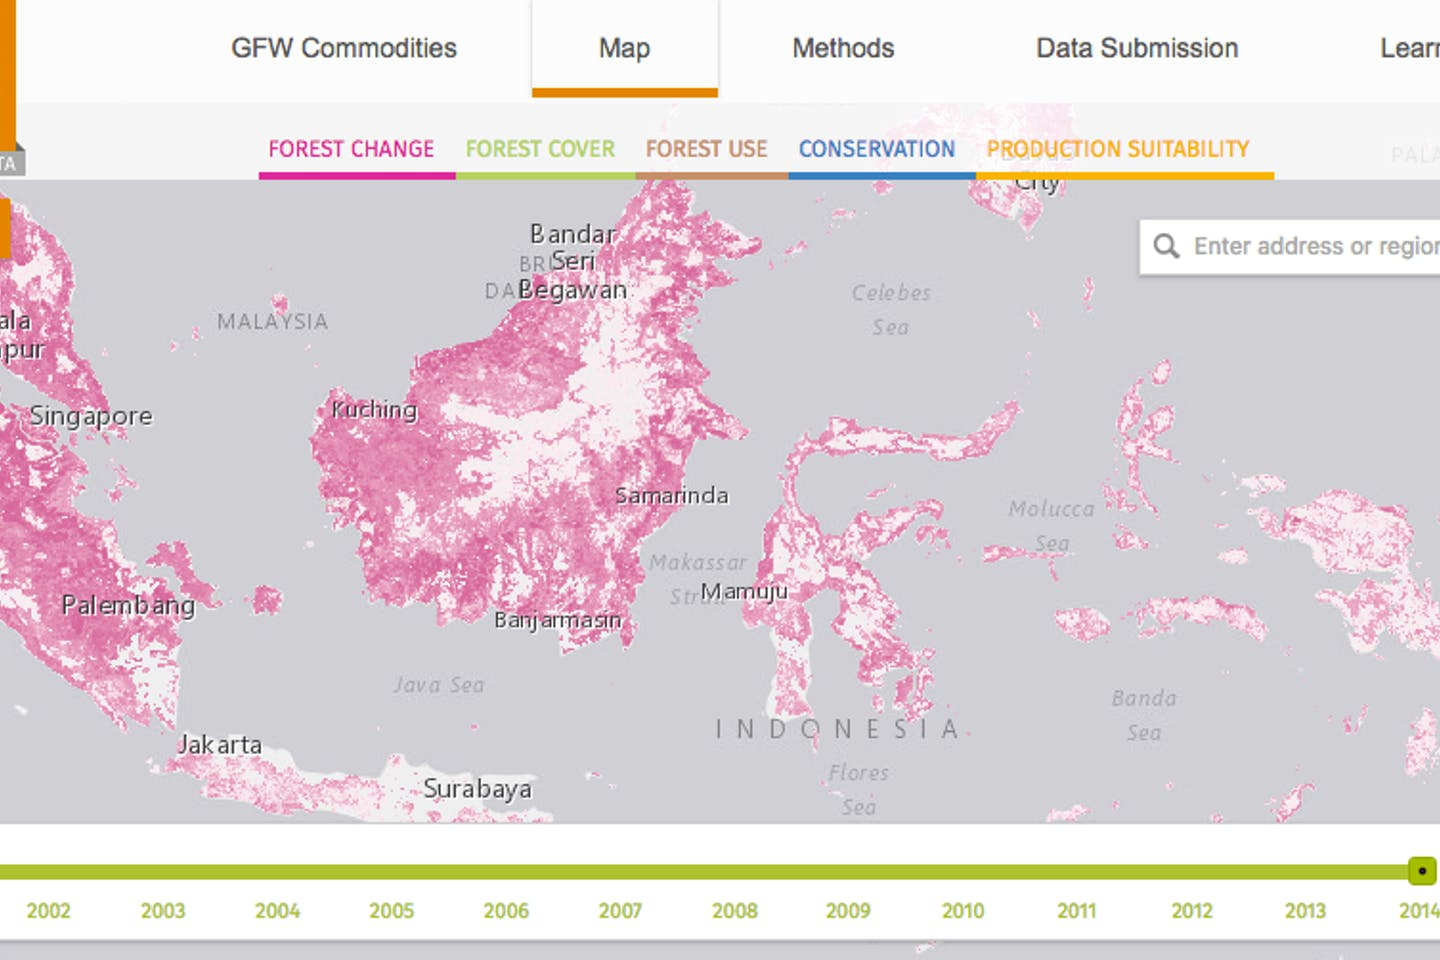 World Resources Institute's Global Forest Watch Commodities platform shows companies where deforestation is happening. Image: WRI